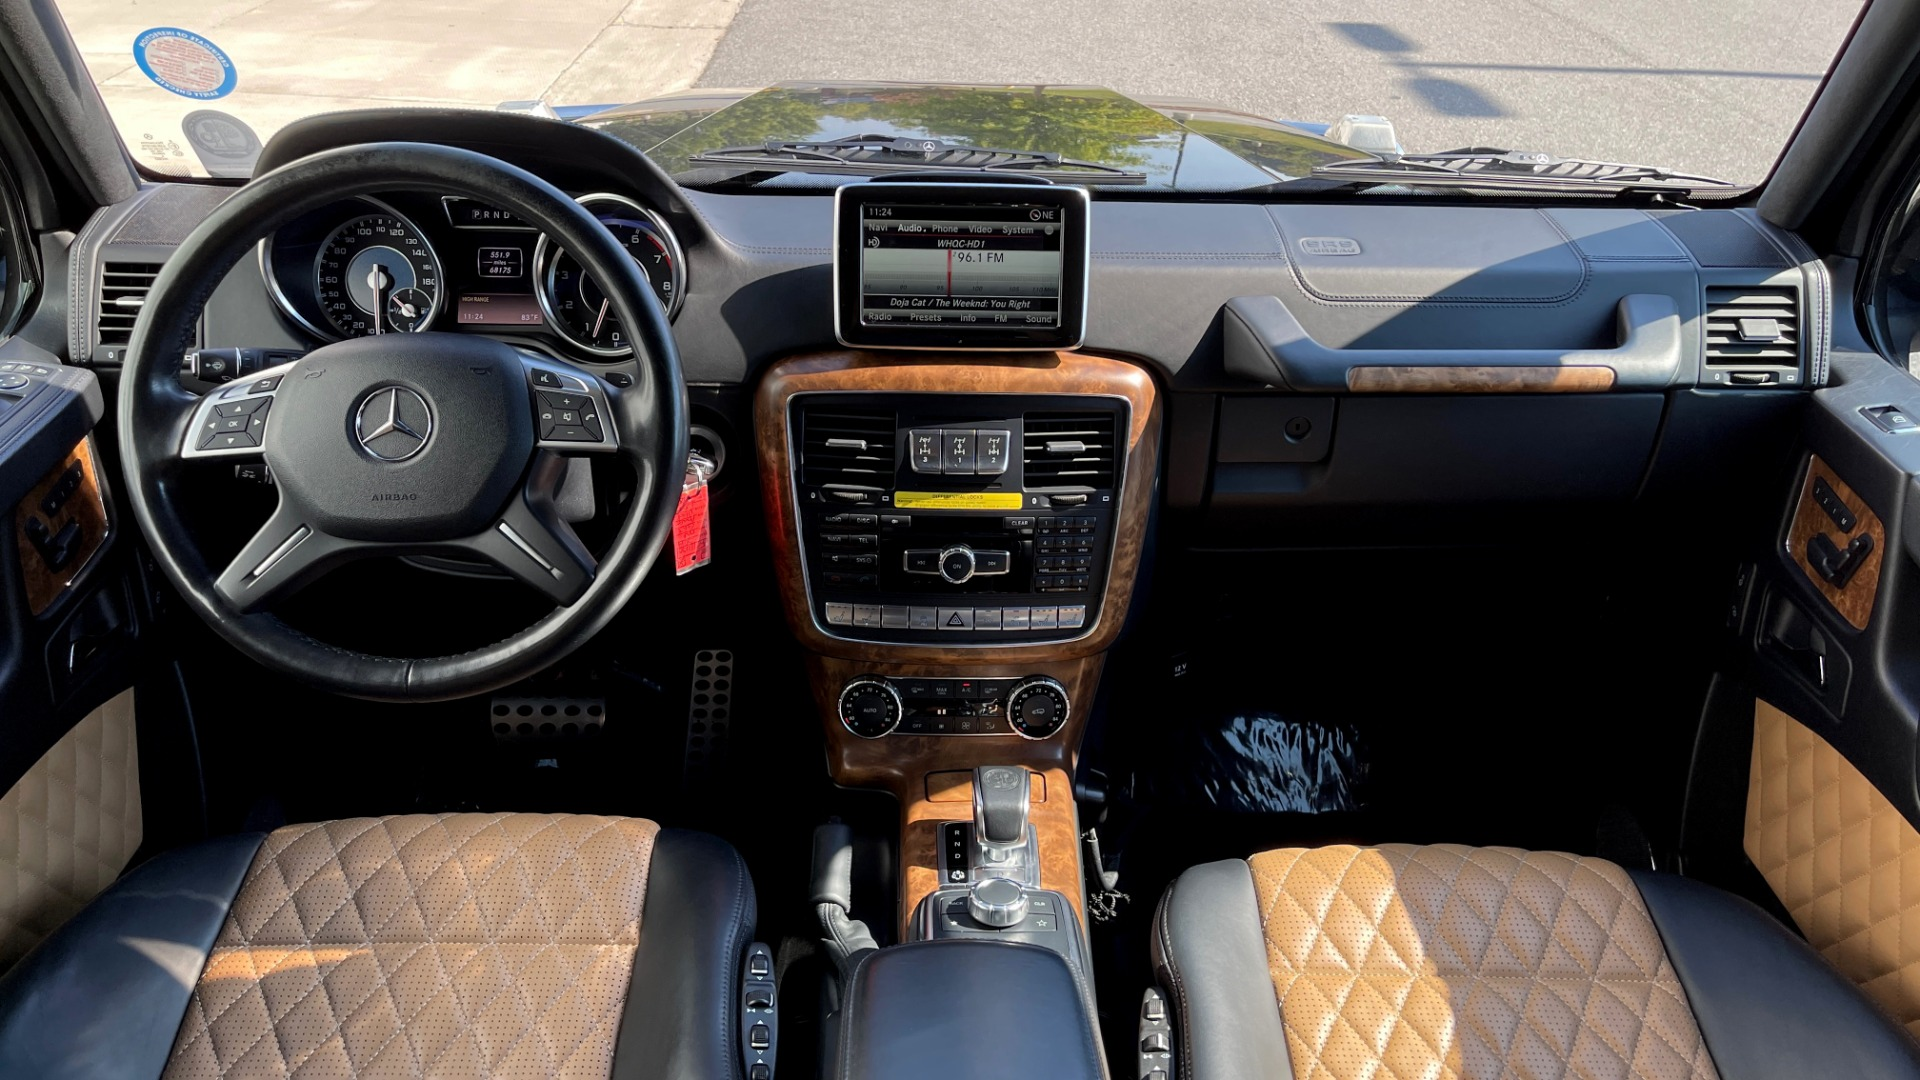 Used 2014 Mercedes-Benz G-CLASS G 63 AMG / DISGNO LEATHER / NAV / SUNROOF / REARVIEW for sale $88,999 at Formula Imports in Charlotte NC 28227 52